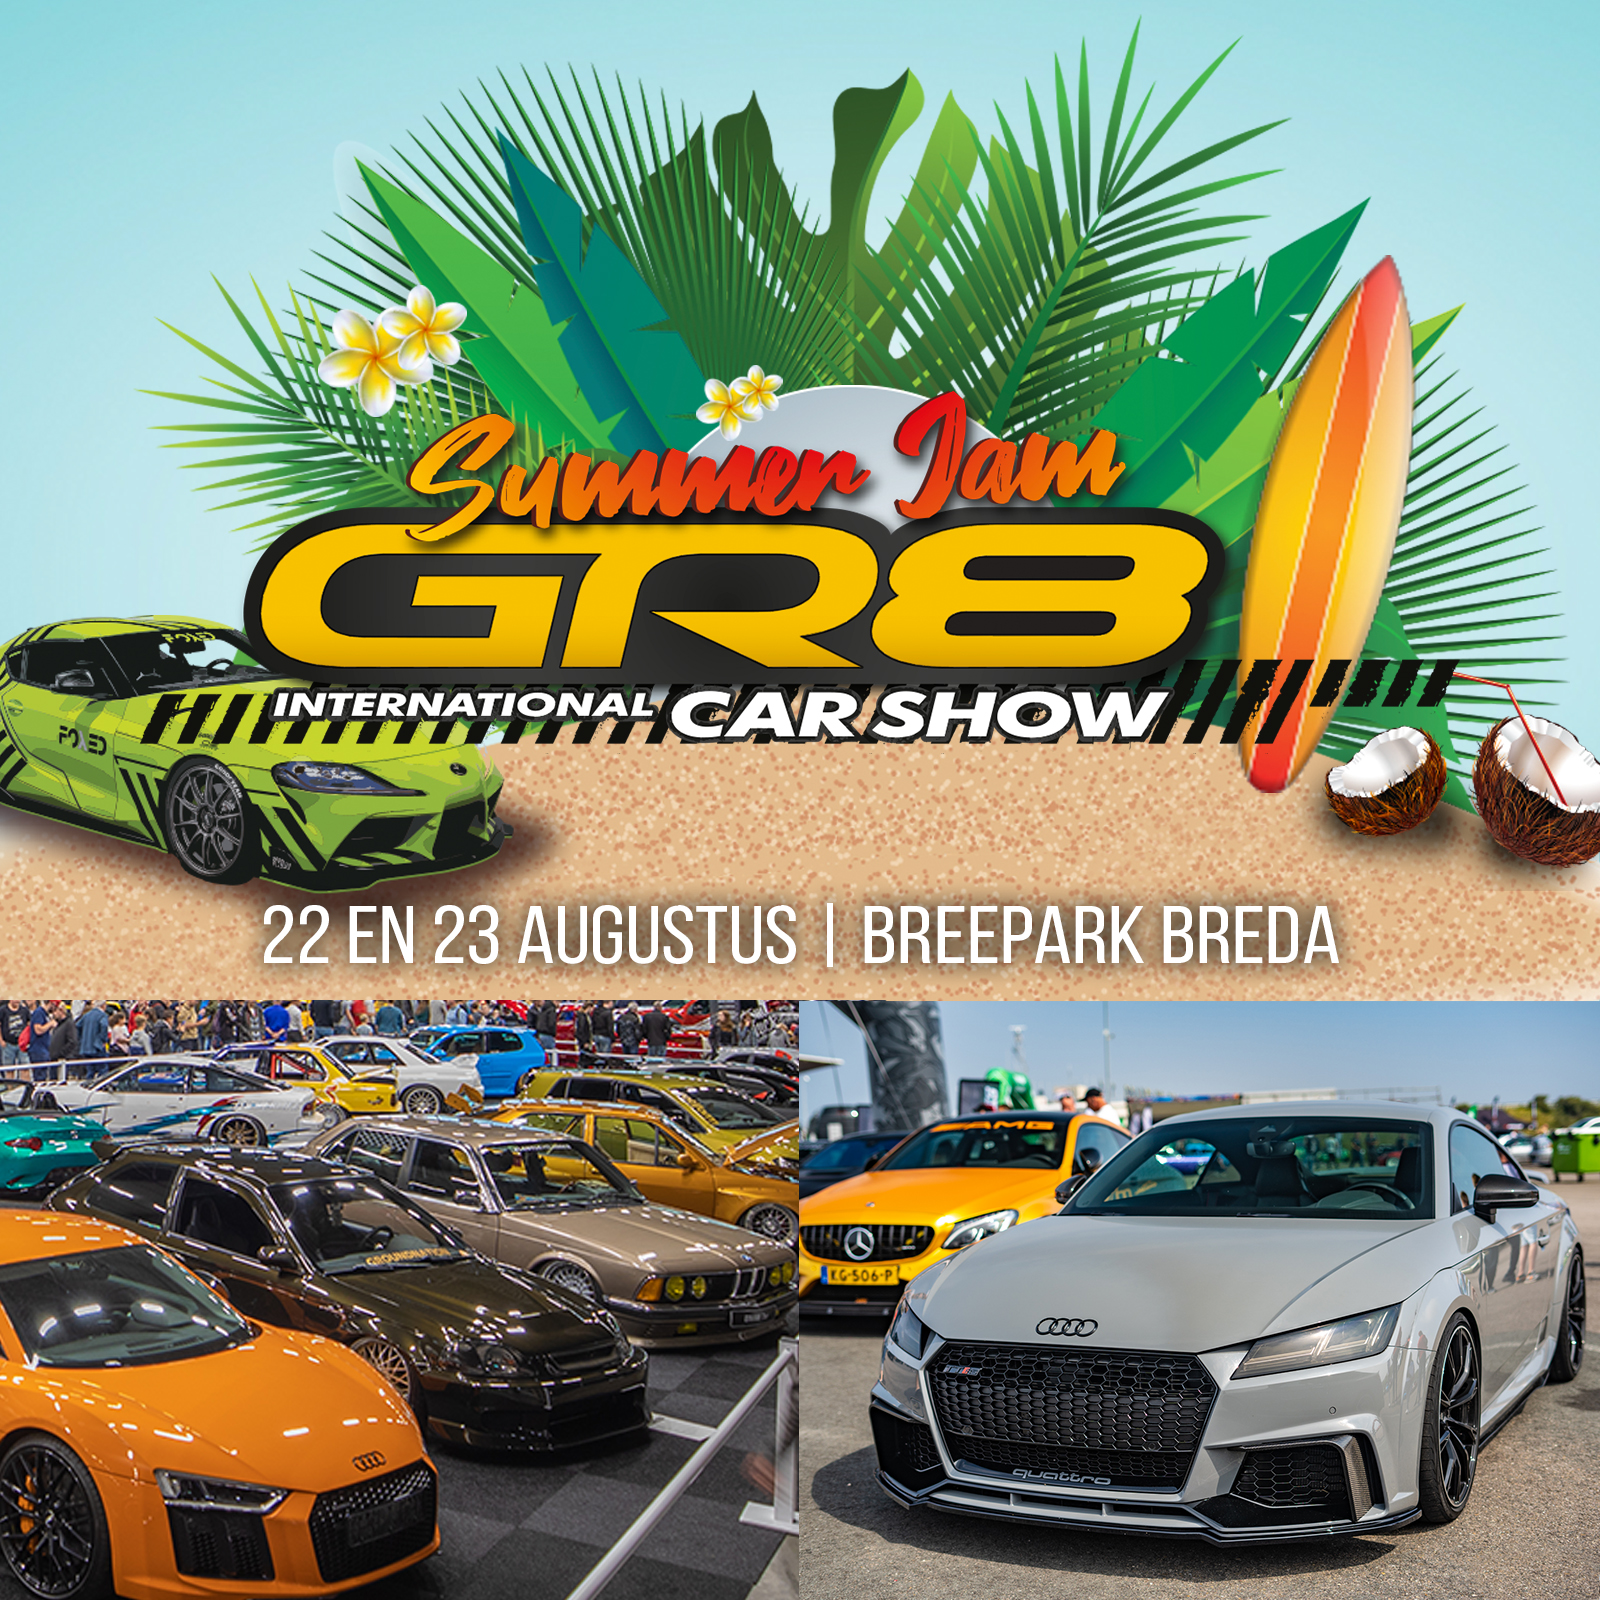 NIEUW IN NL! GR8 Summer Jam - International Car Show!